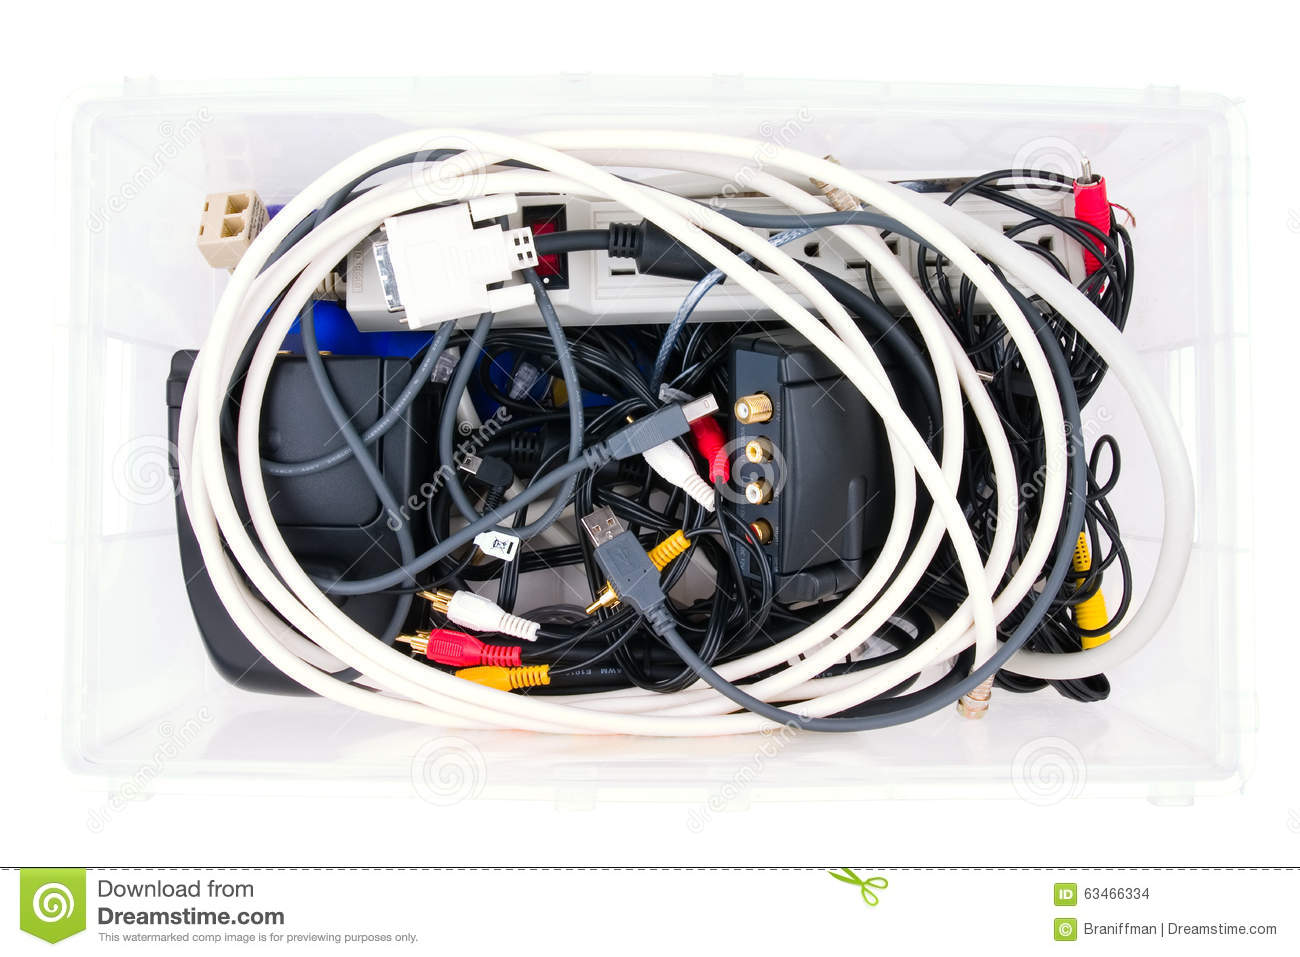 Outstanding Wires And Connectors For Computer Audio Video In A Box Stock Photo Wiring 101 Akebretraxxcnl